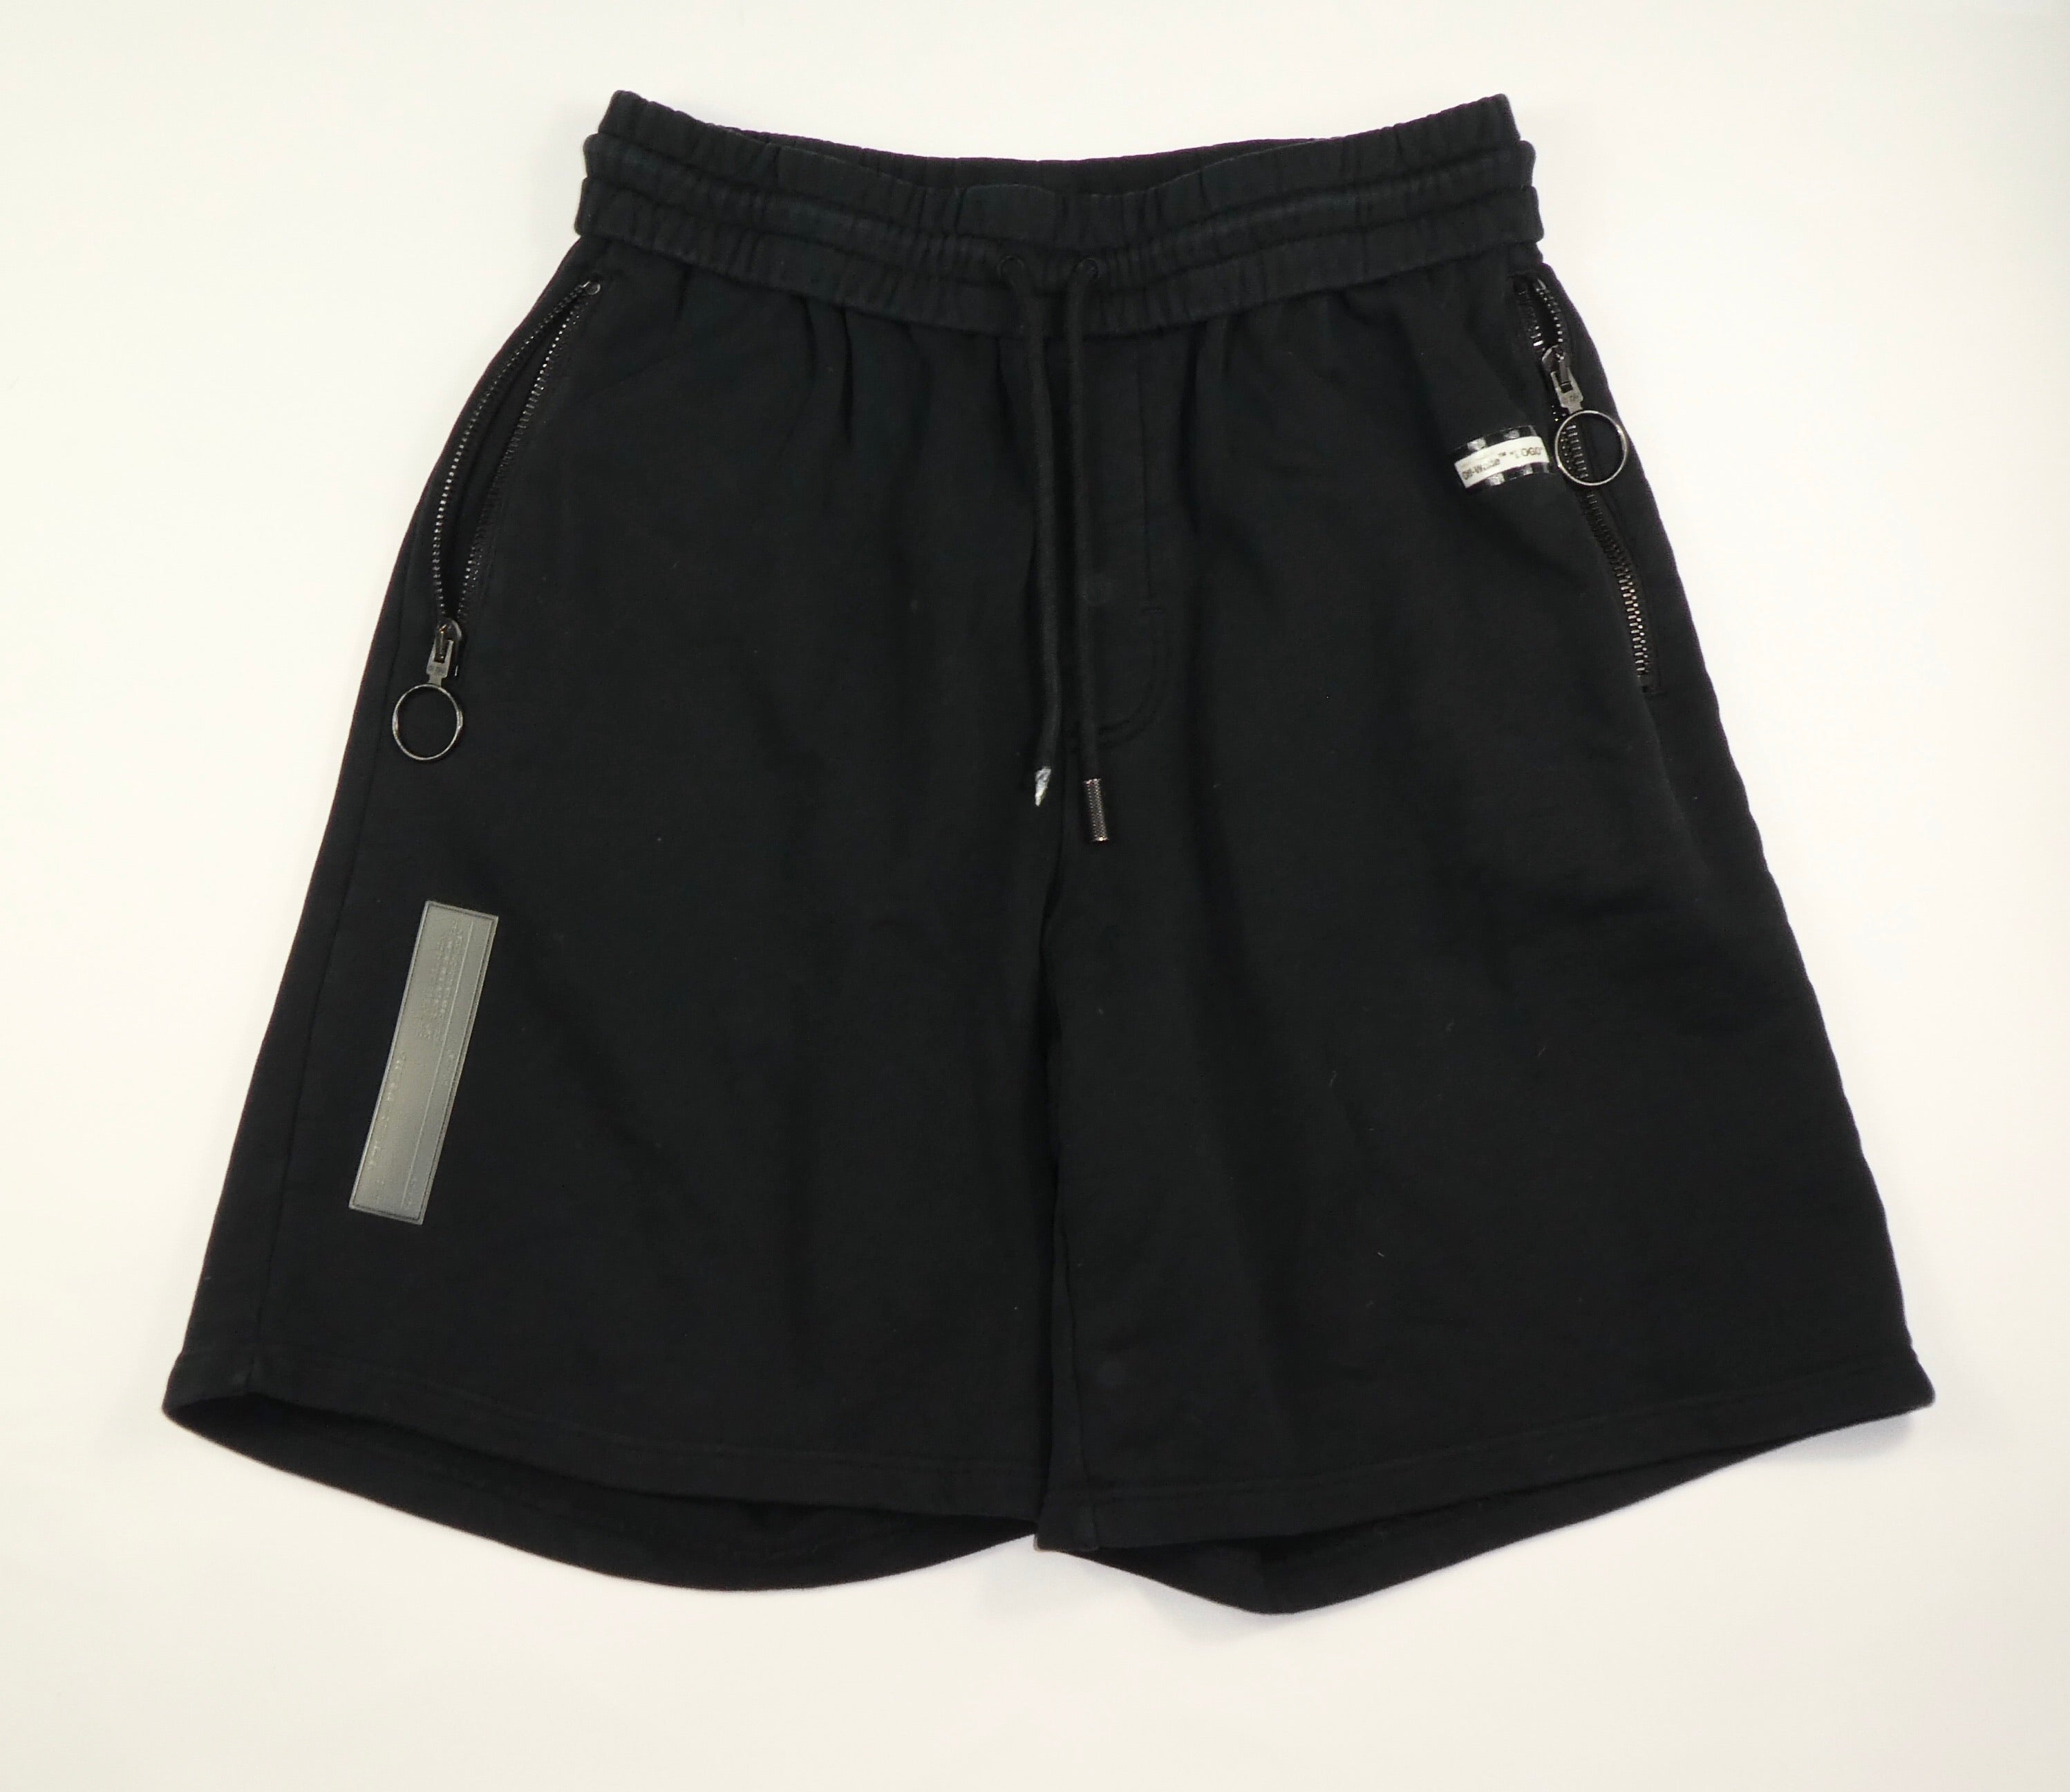 Off White Shorts - Small (fits more like a medium/large)